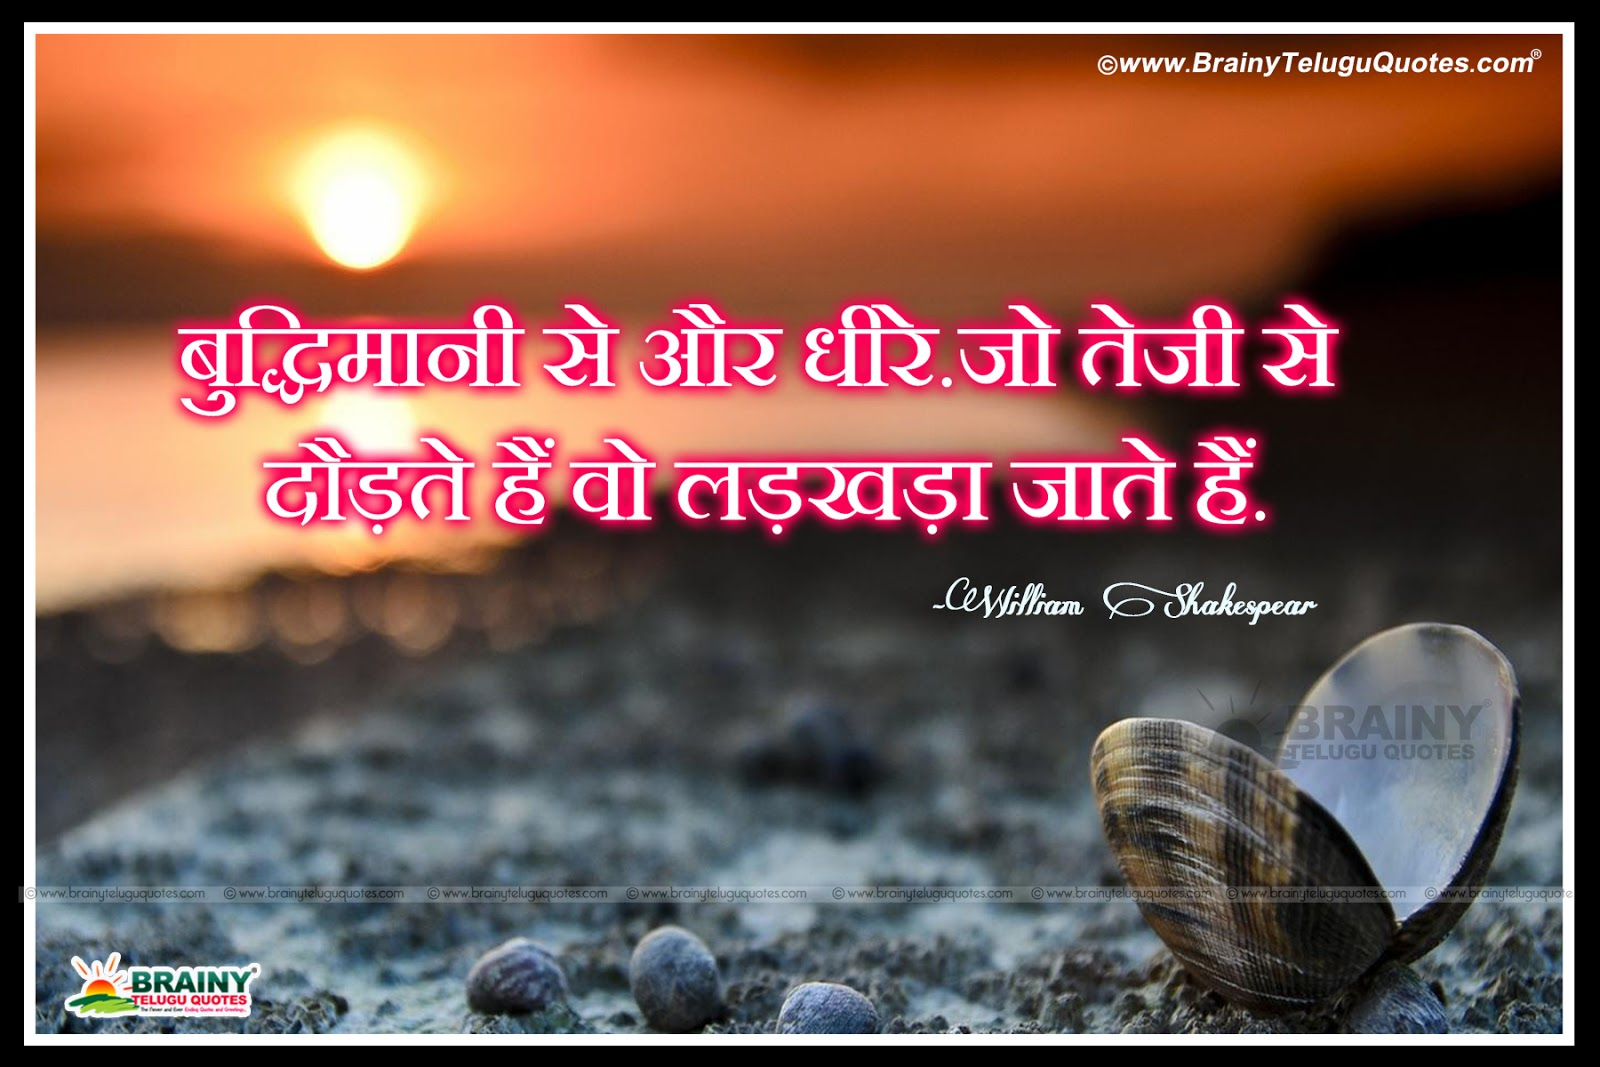 Shakespeare Life Quotes William Shakespeare Quotes In Hindi  विलियम